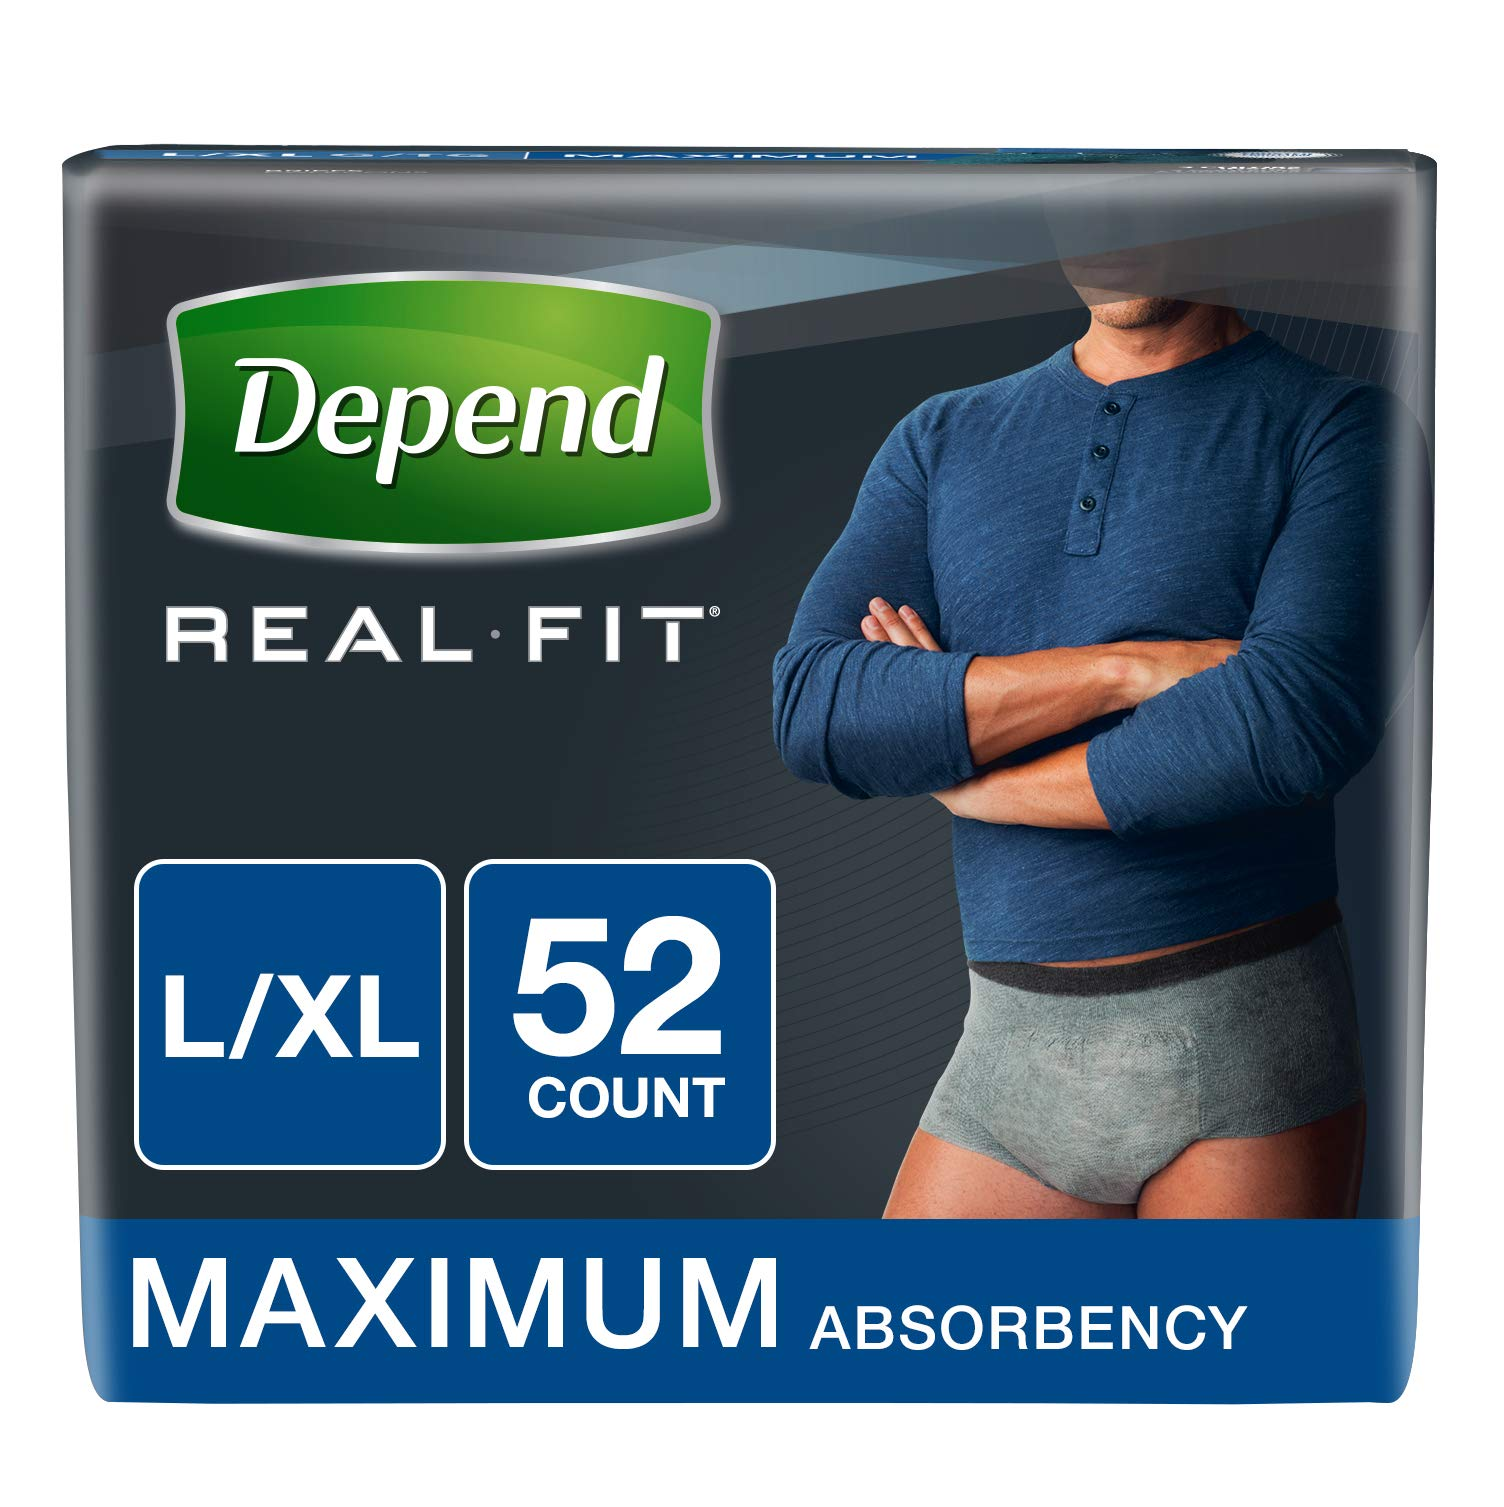 Depend Real Fit Incontinence Underwear for Men, Maximum Absorbency, L/XL, Grey, 52 Count by Depend